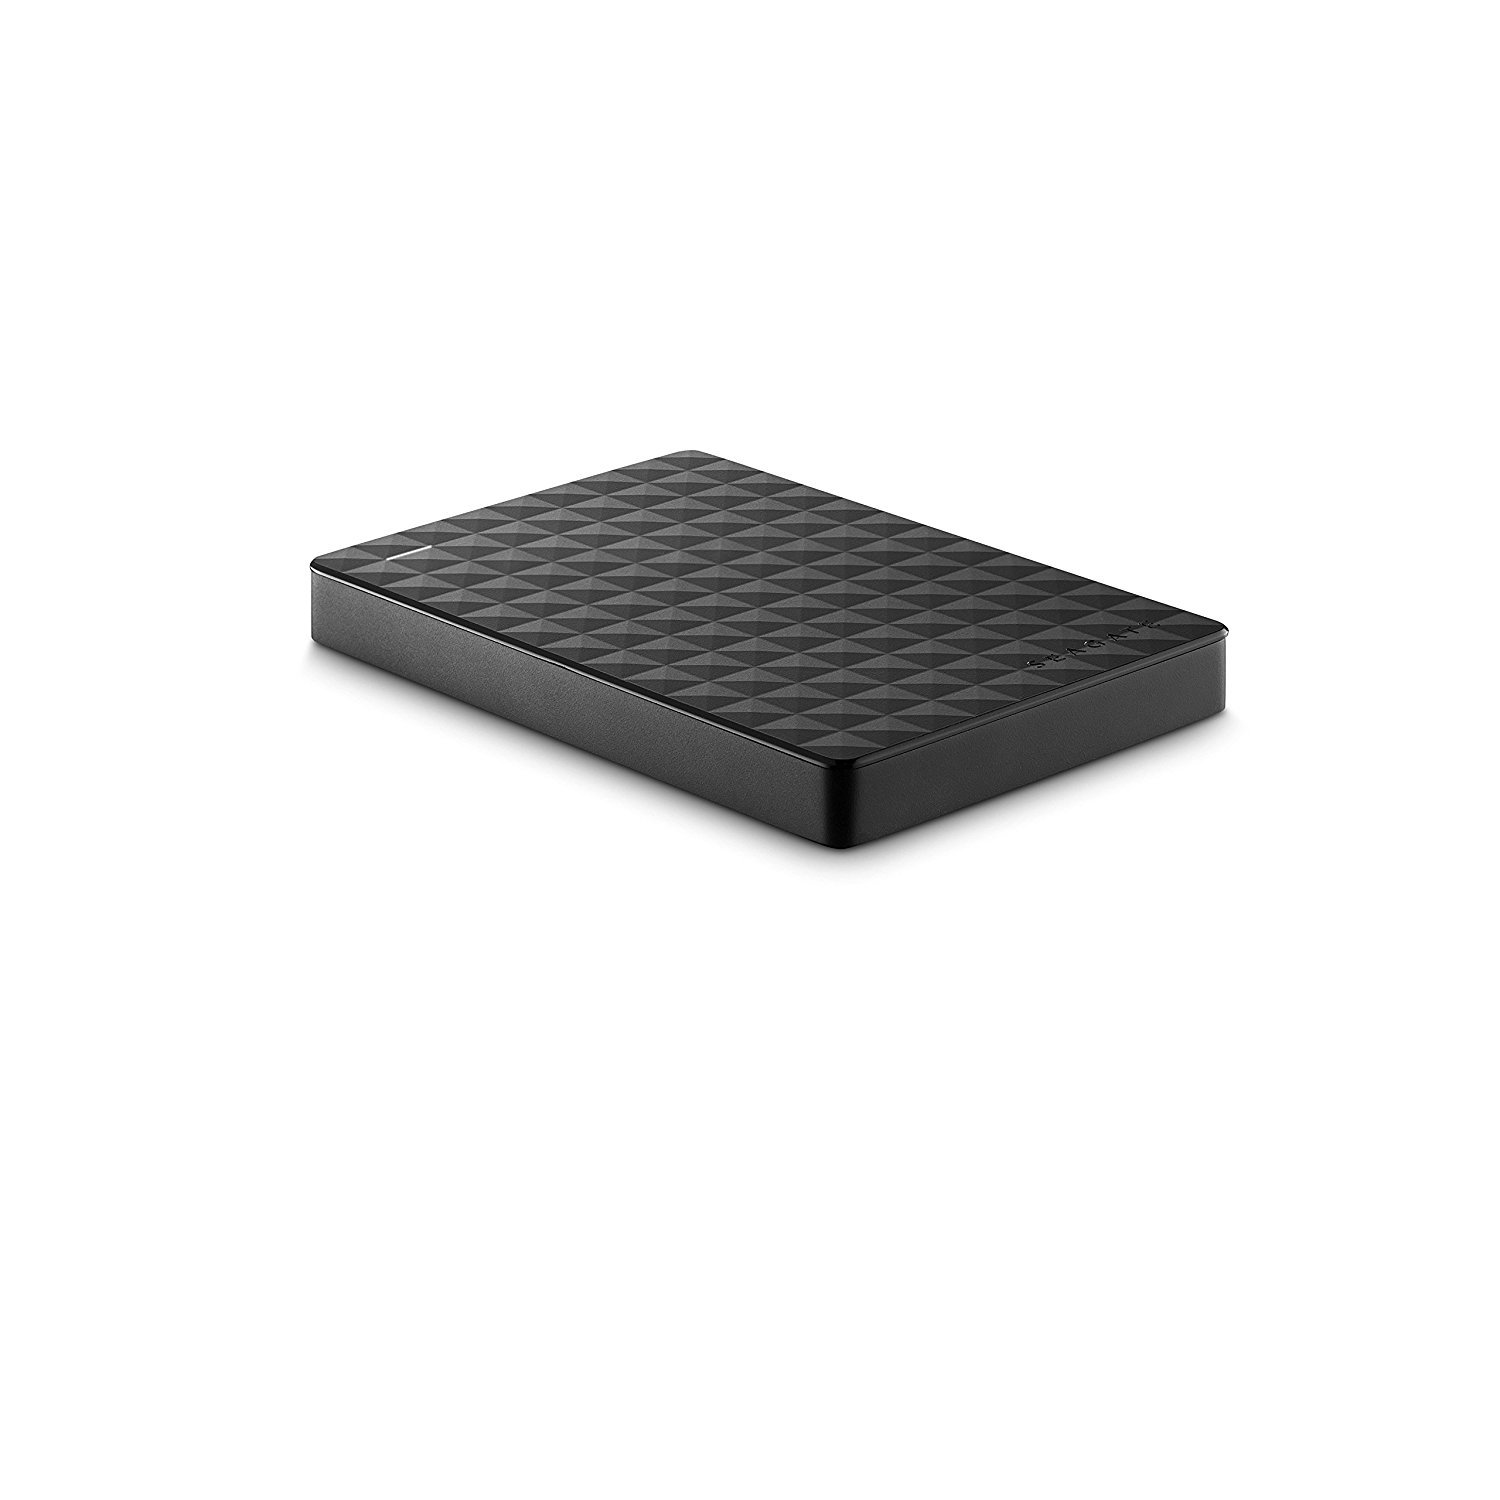 "2TB Seagate Expansion Portable 2.5"" USB 3.0 External HDD - Black image"